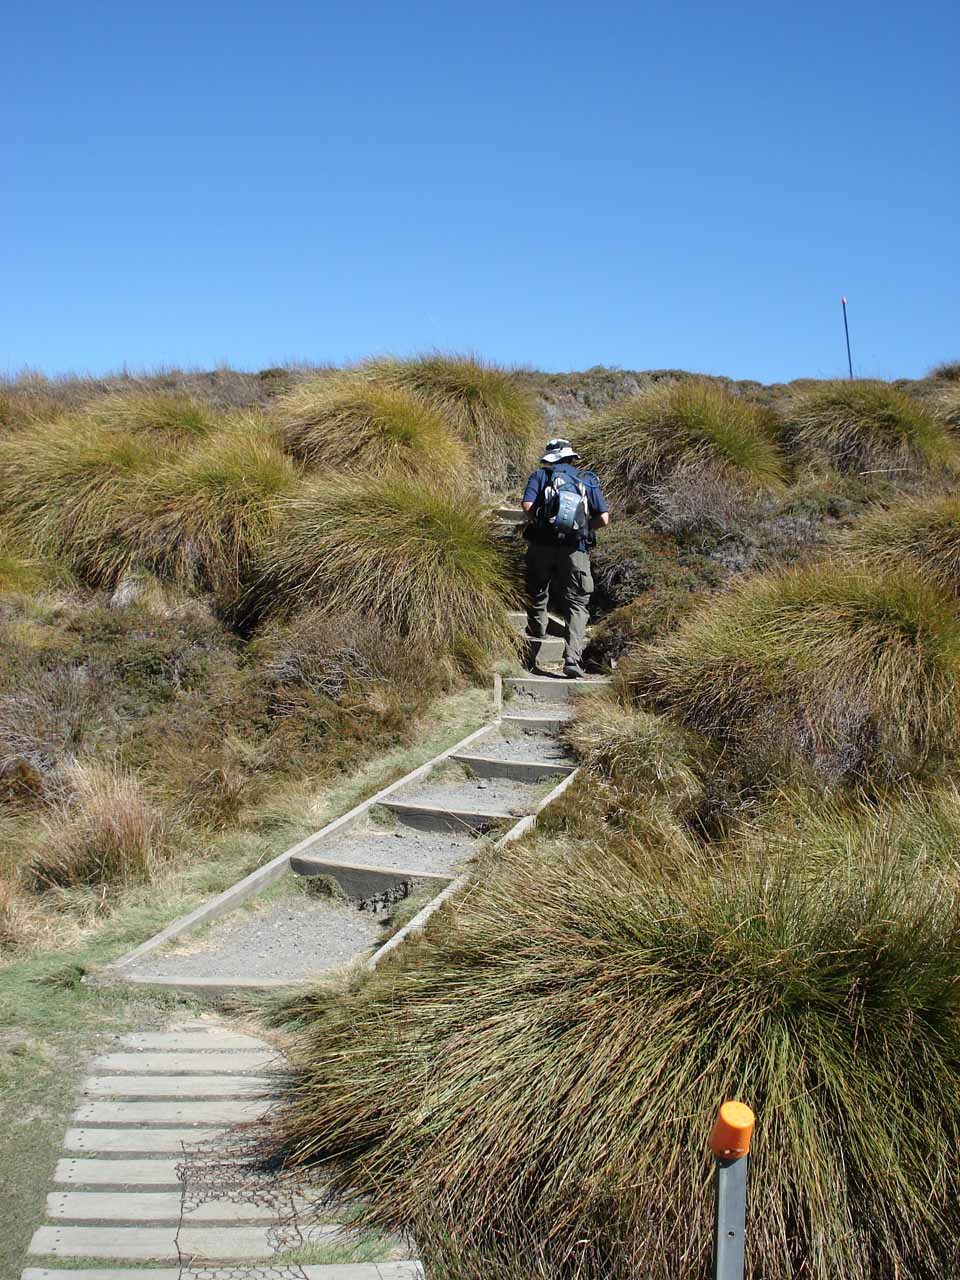 The track eventually started climbing as we started to leave the tussock fields and into some groves of forest